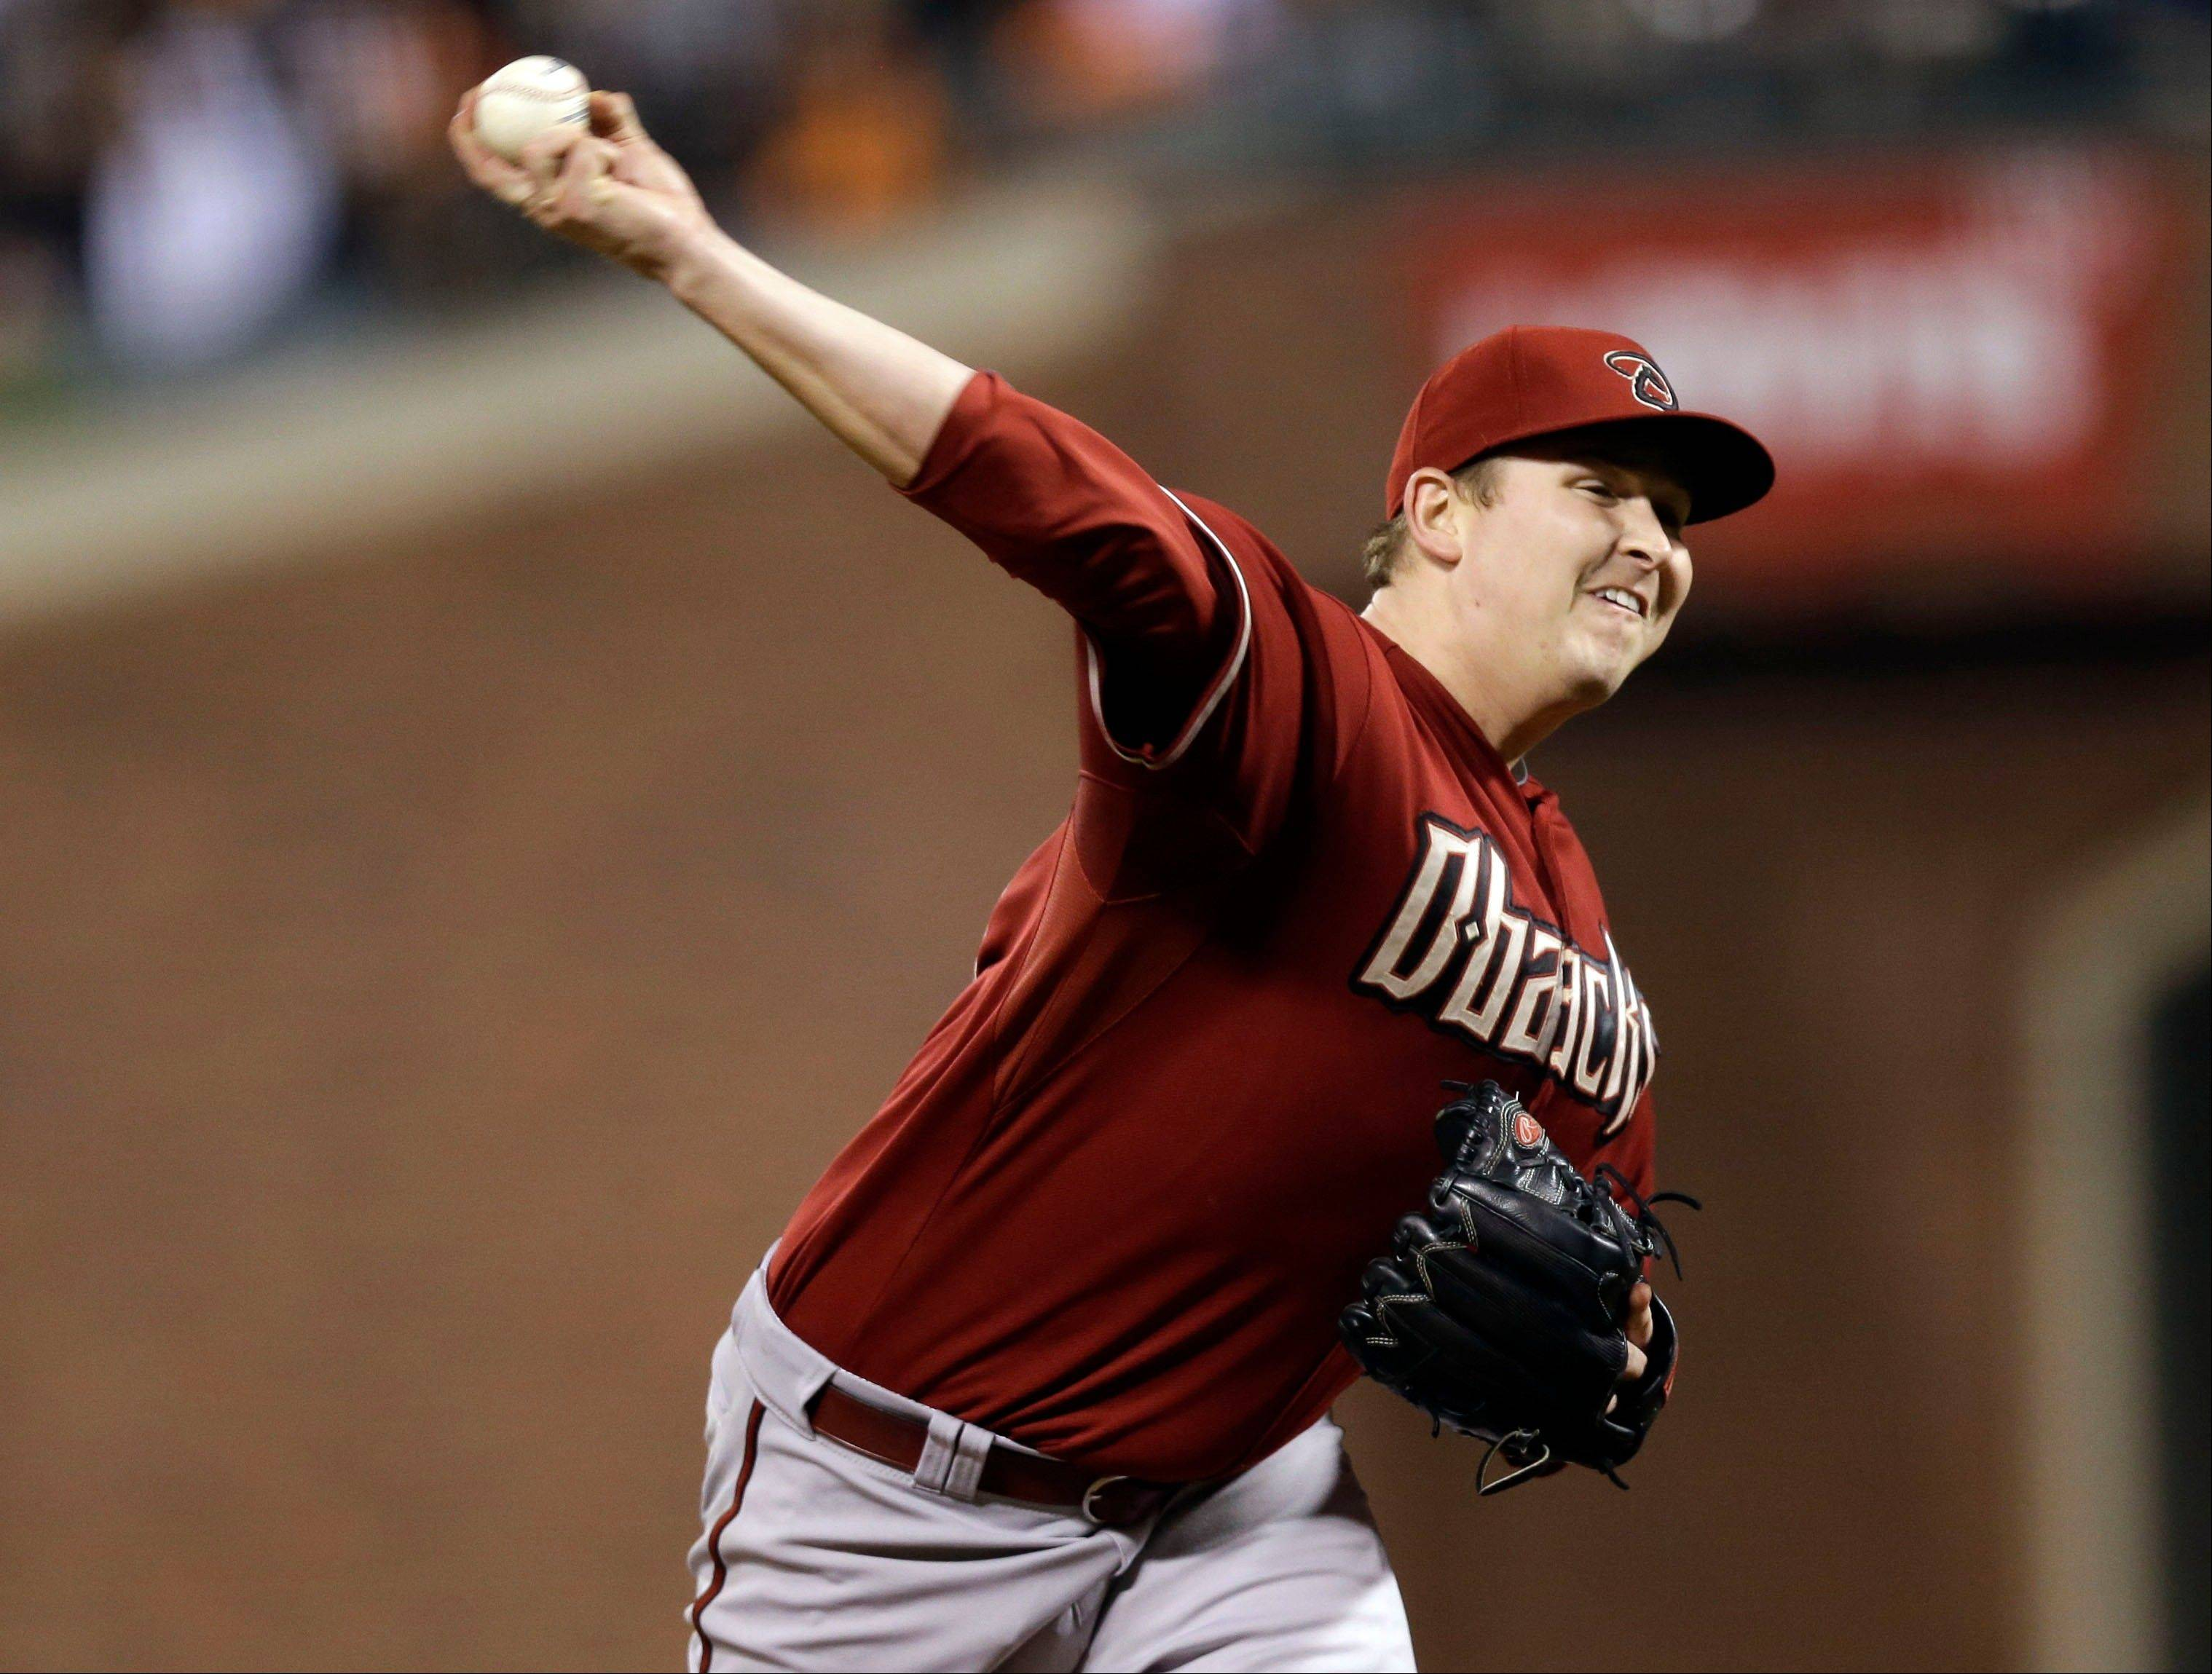 Arizona Diamondbacks starter Trevor Cahill retired the first 16 batters he faced Wednesday in San Francisco.